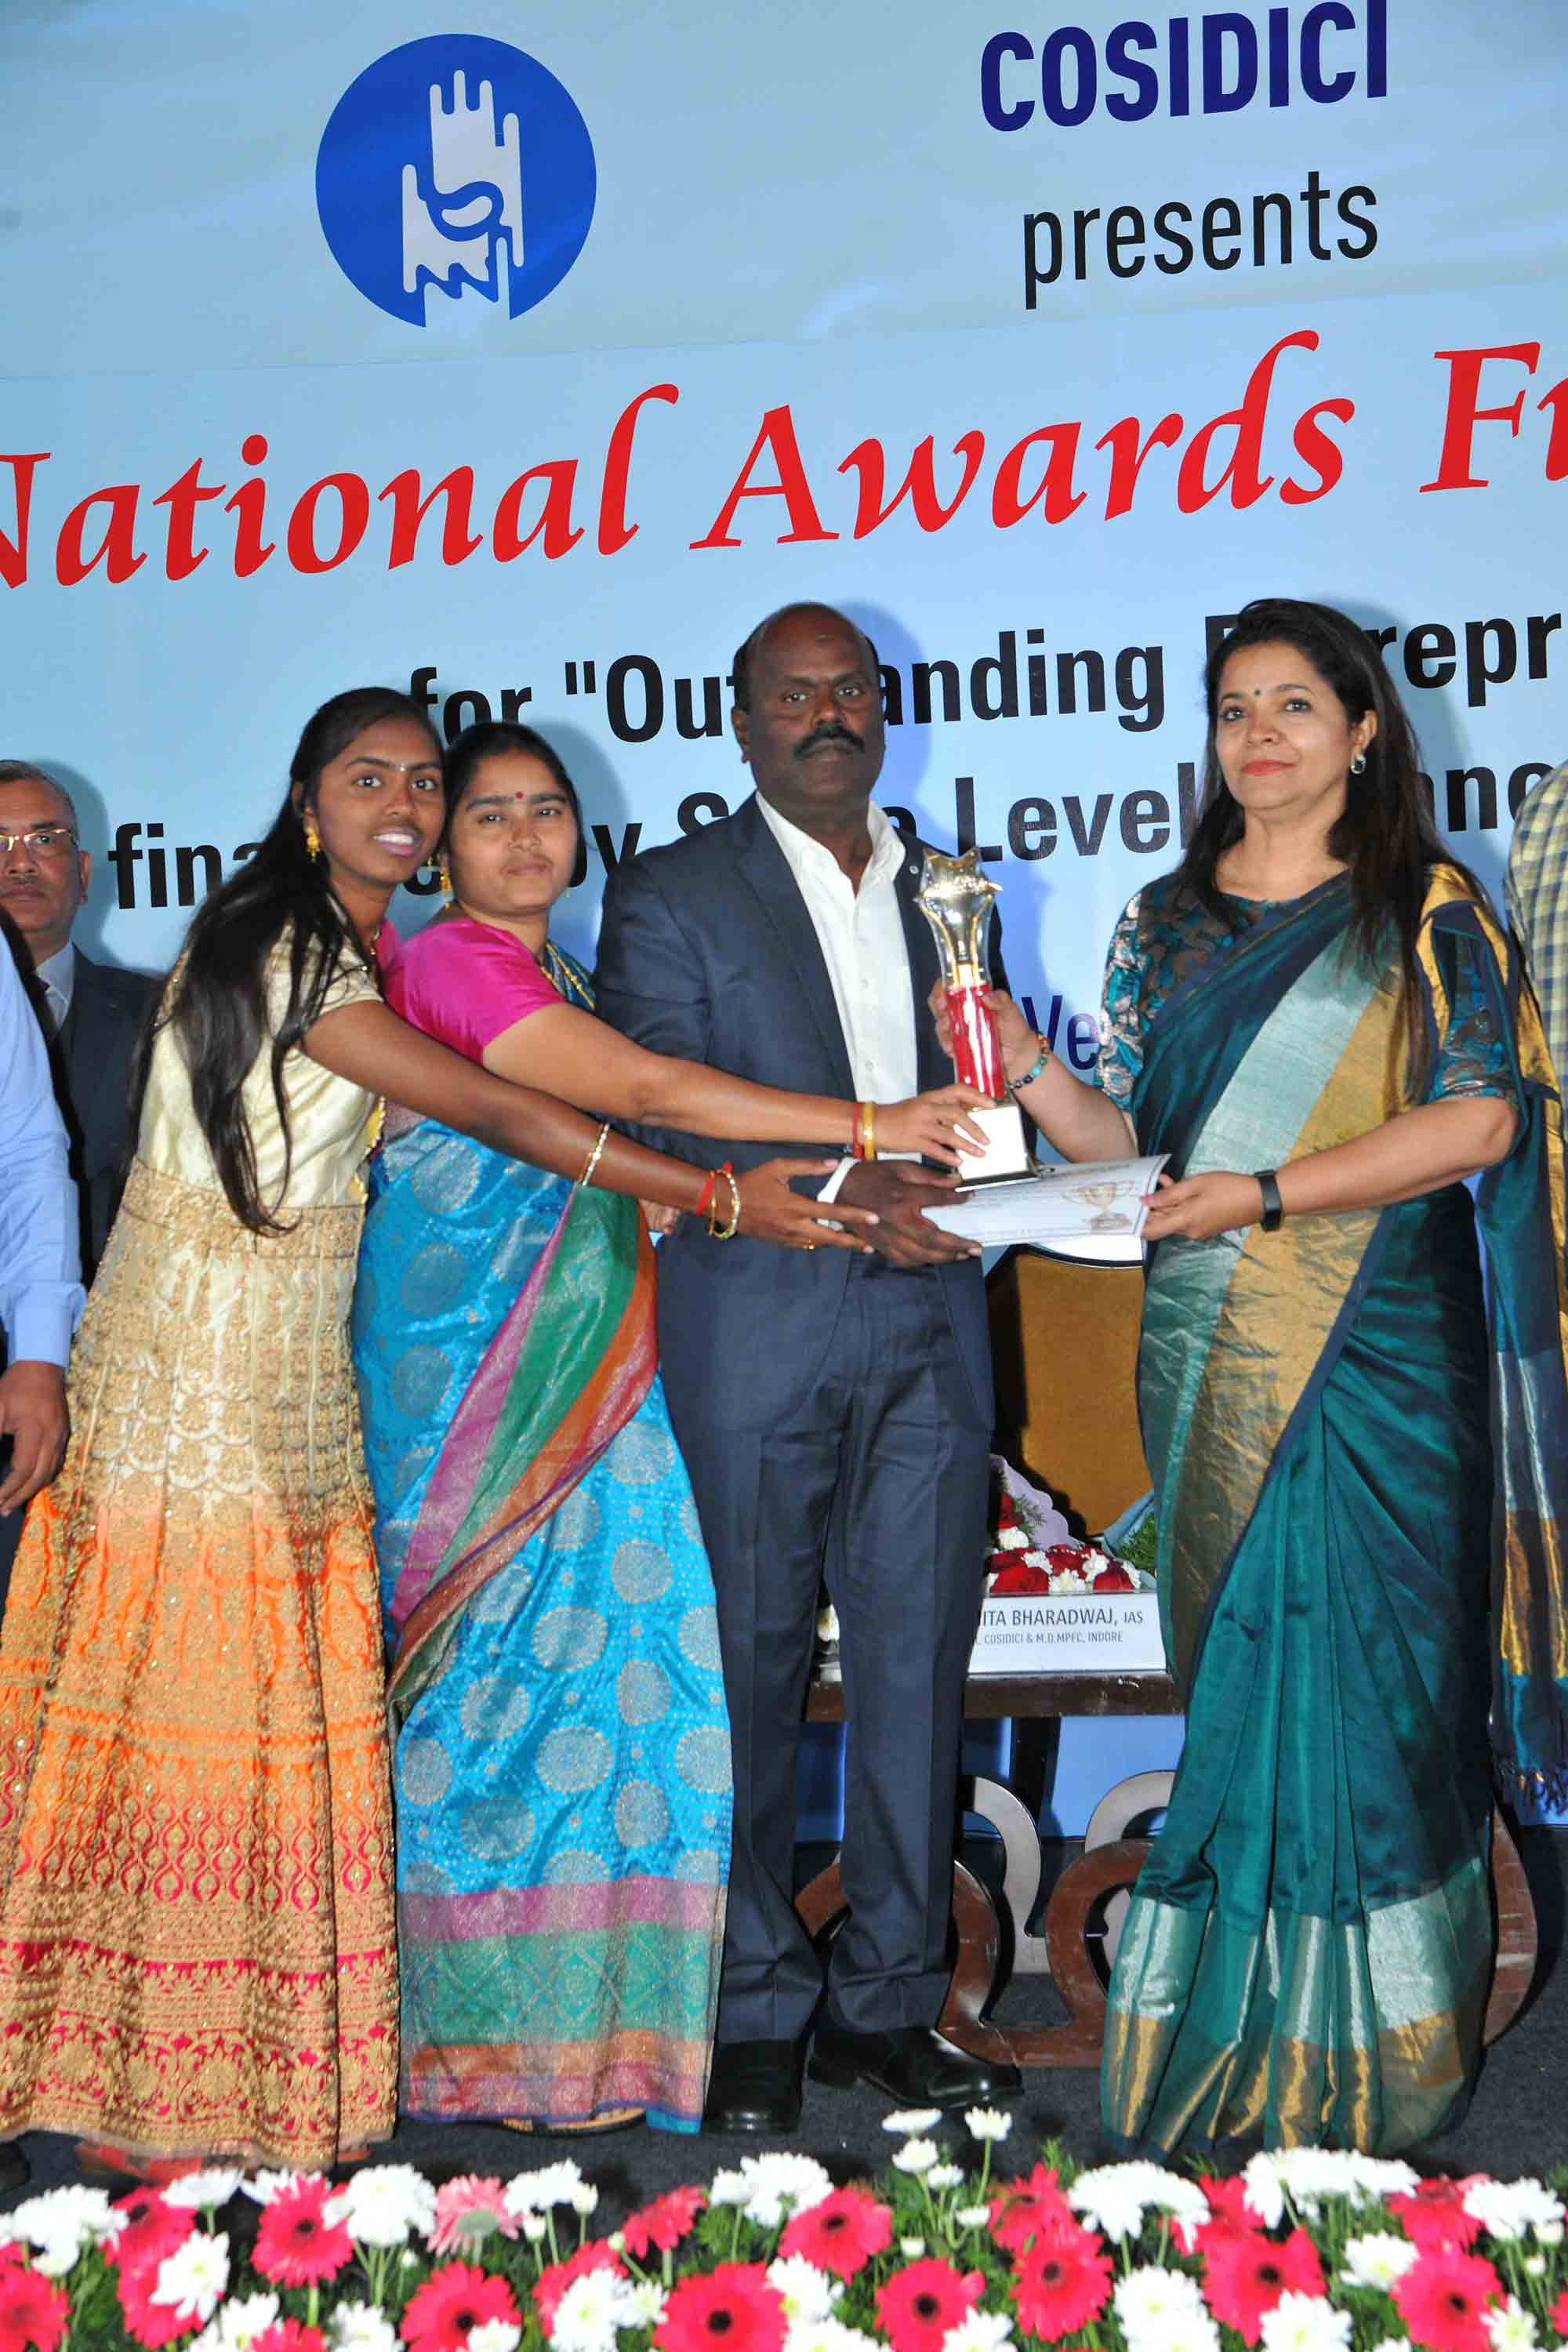 - Promoter of Excellent Hi-Care Pvt Ltd ,Villupuram, receiving Best First Generation Entrepreneur Award from COSIDICI during its National Awards 2019 Program held at Bengaluru